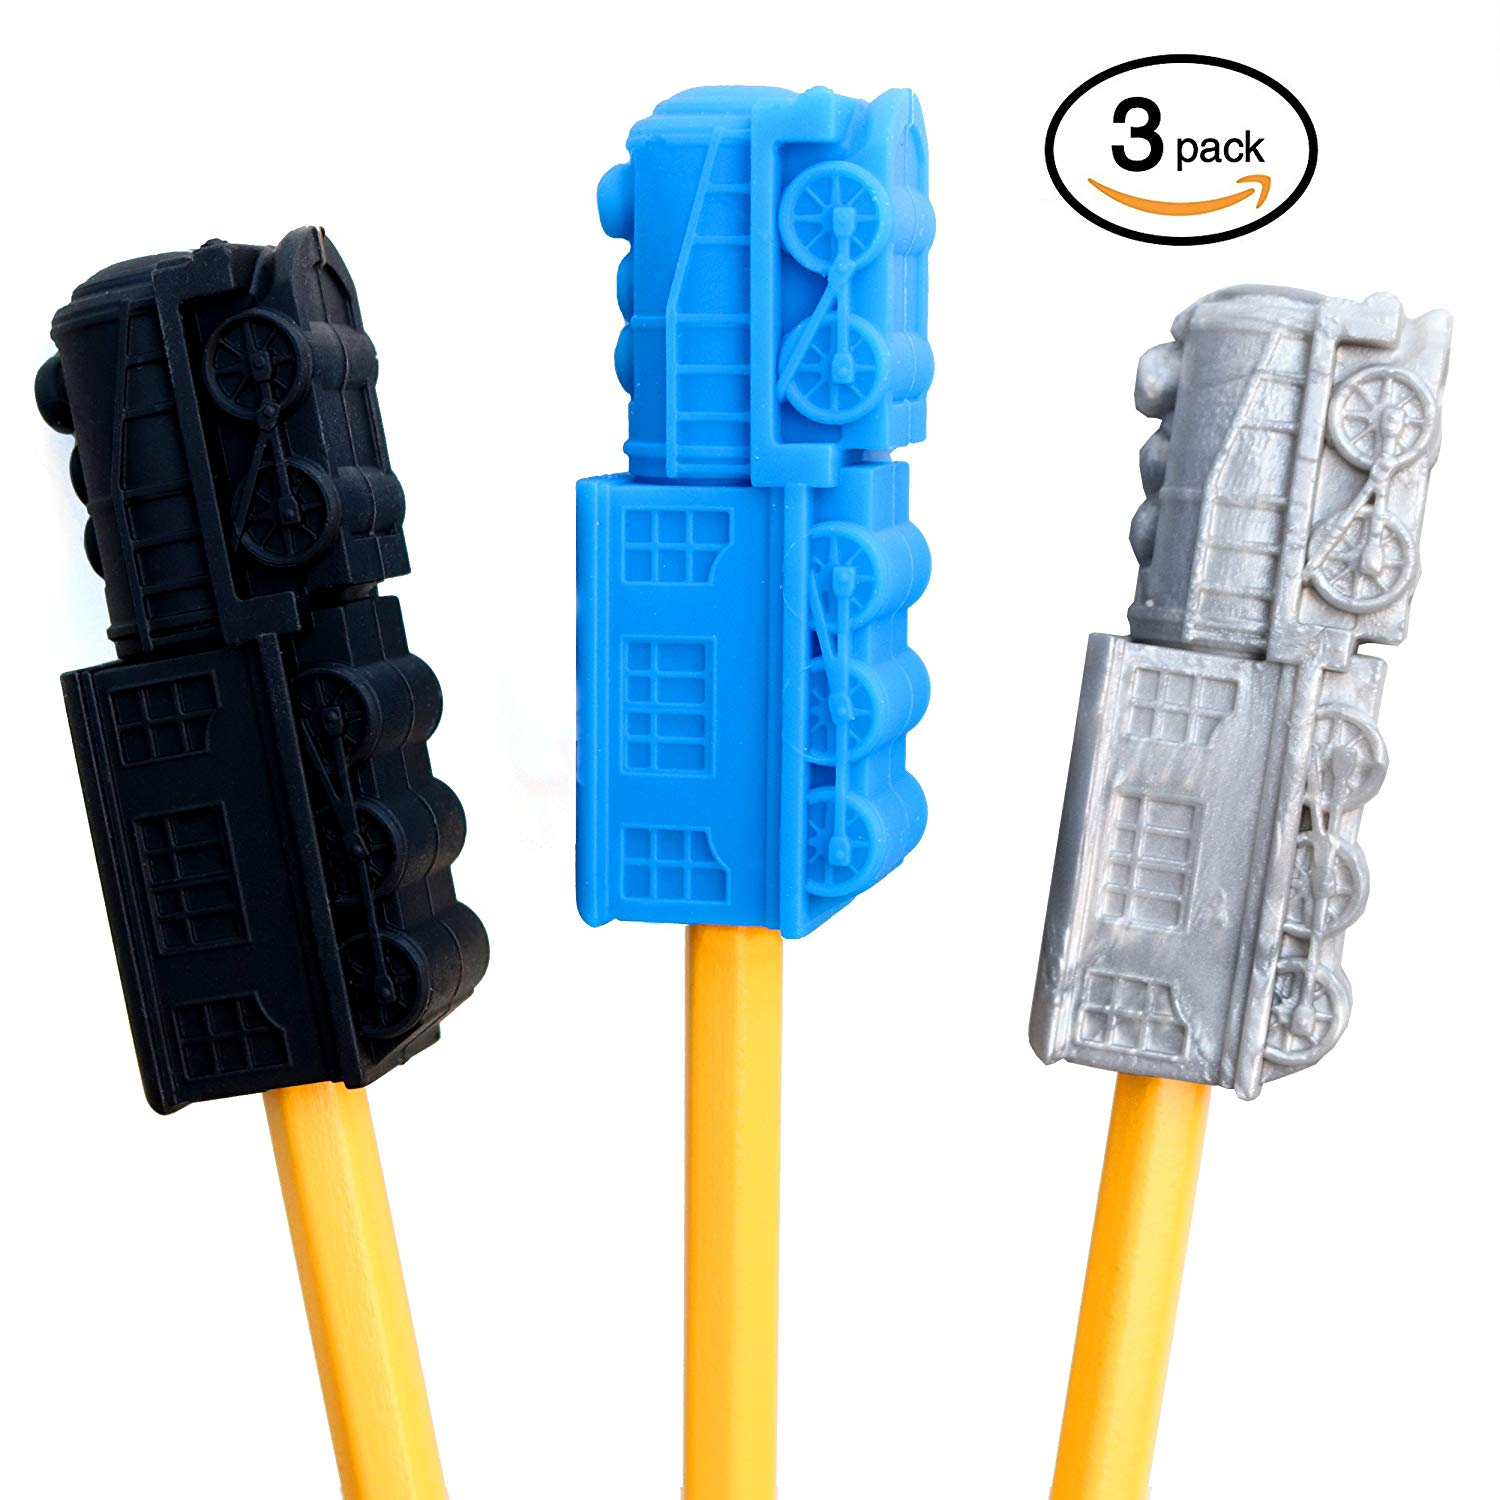 GoGoChews Chewing Pencil Toppers – 3 PACK TRAIN SHAPE Sensory Chew, Oral Motor Tool, Sensory Input for Special Needs Chewers, Occupational Therapy Aid, Teething/Biting Toys (Blue/Silver/Black)